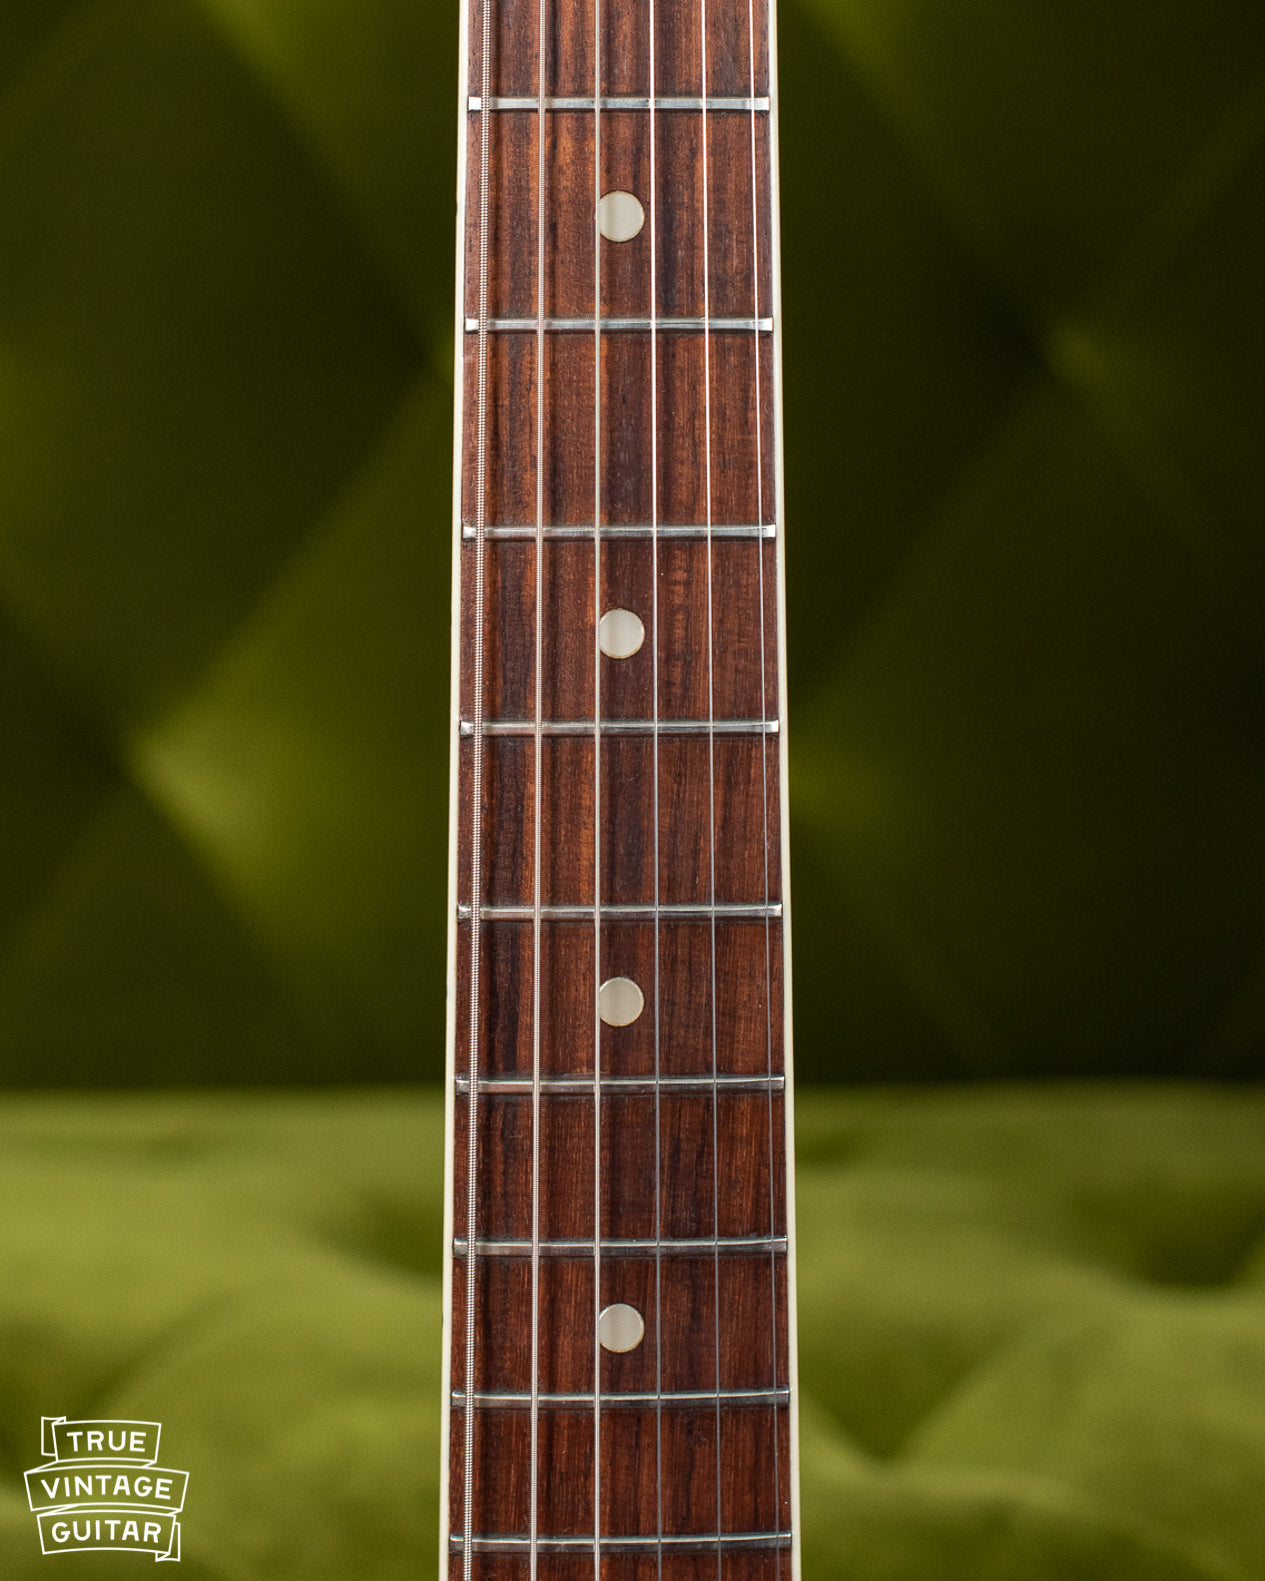 How to date a Fender Jaguar neck, pearl dots and binding